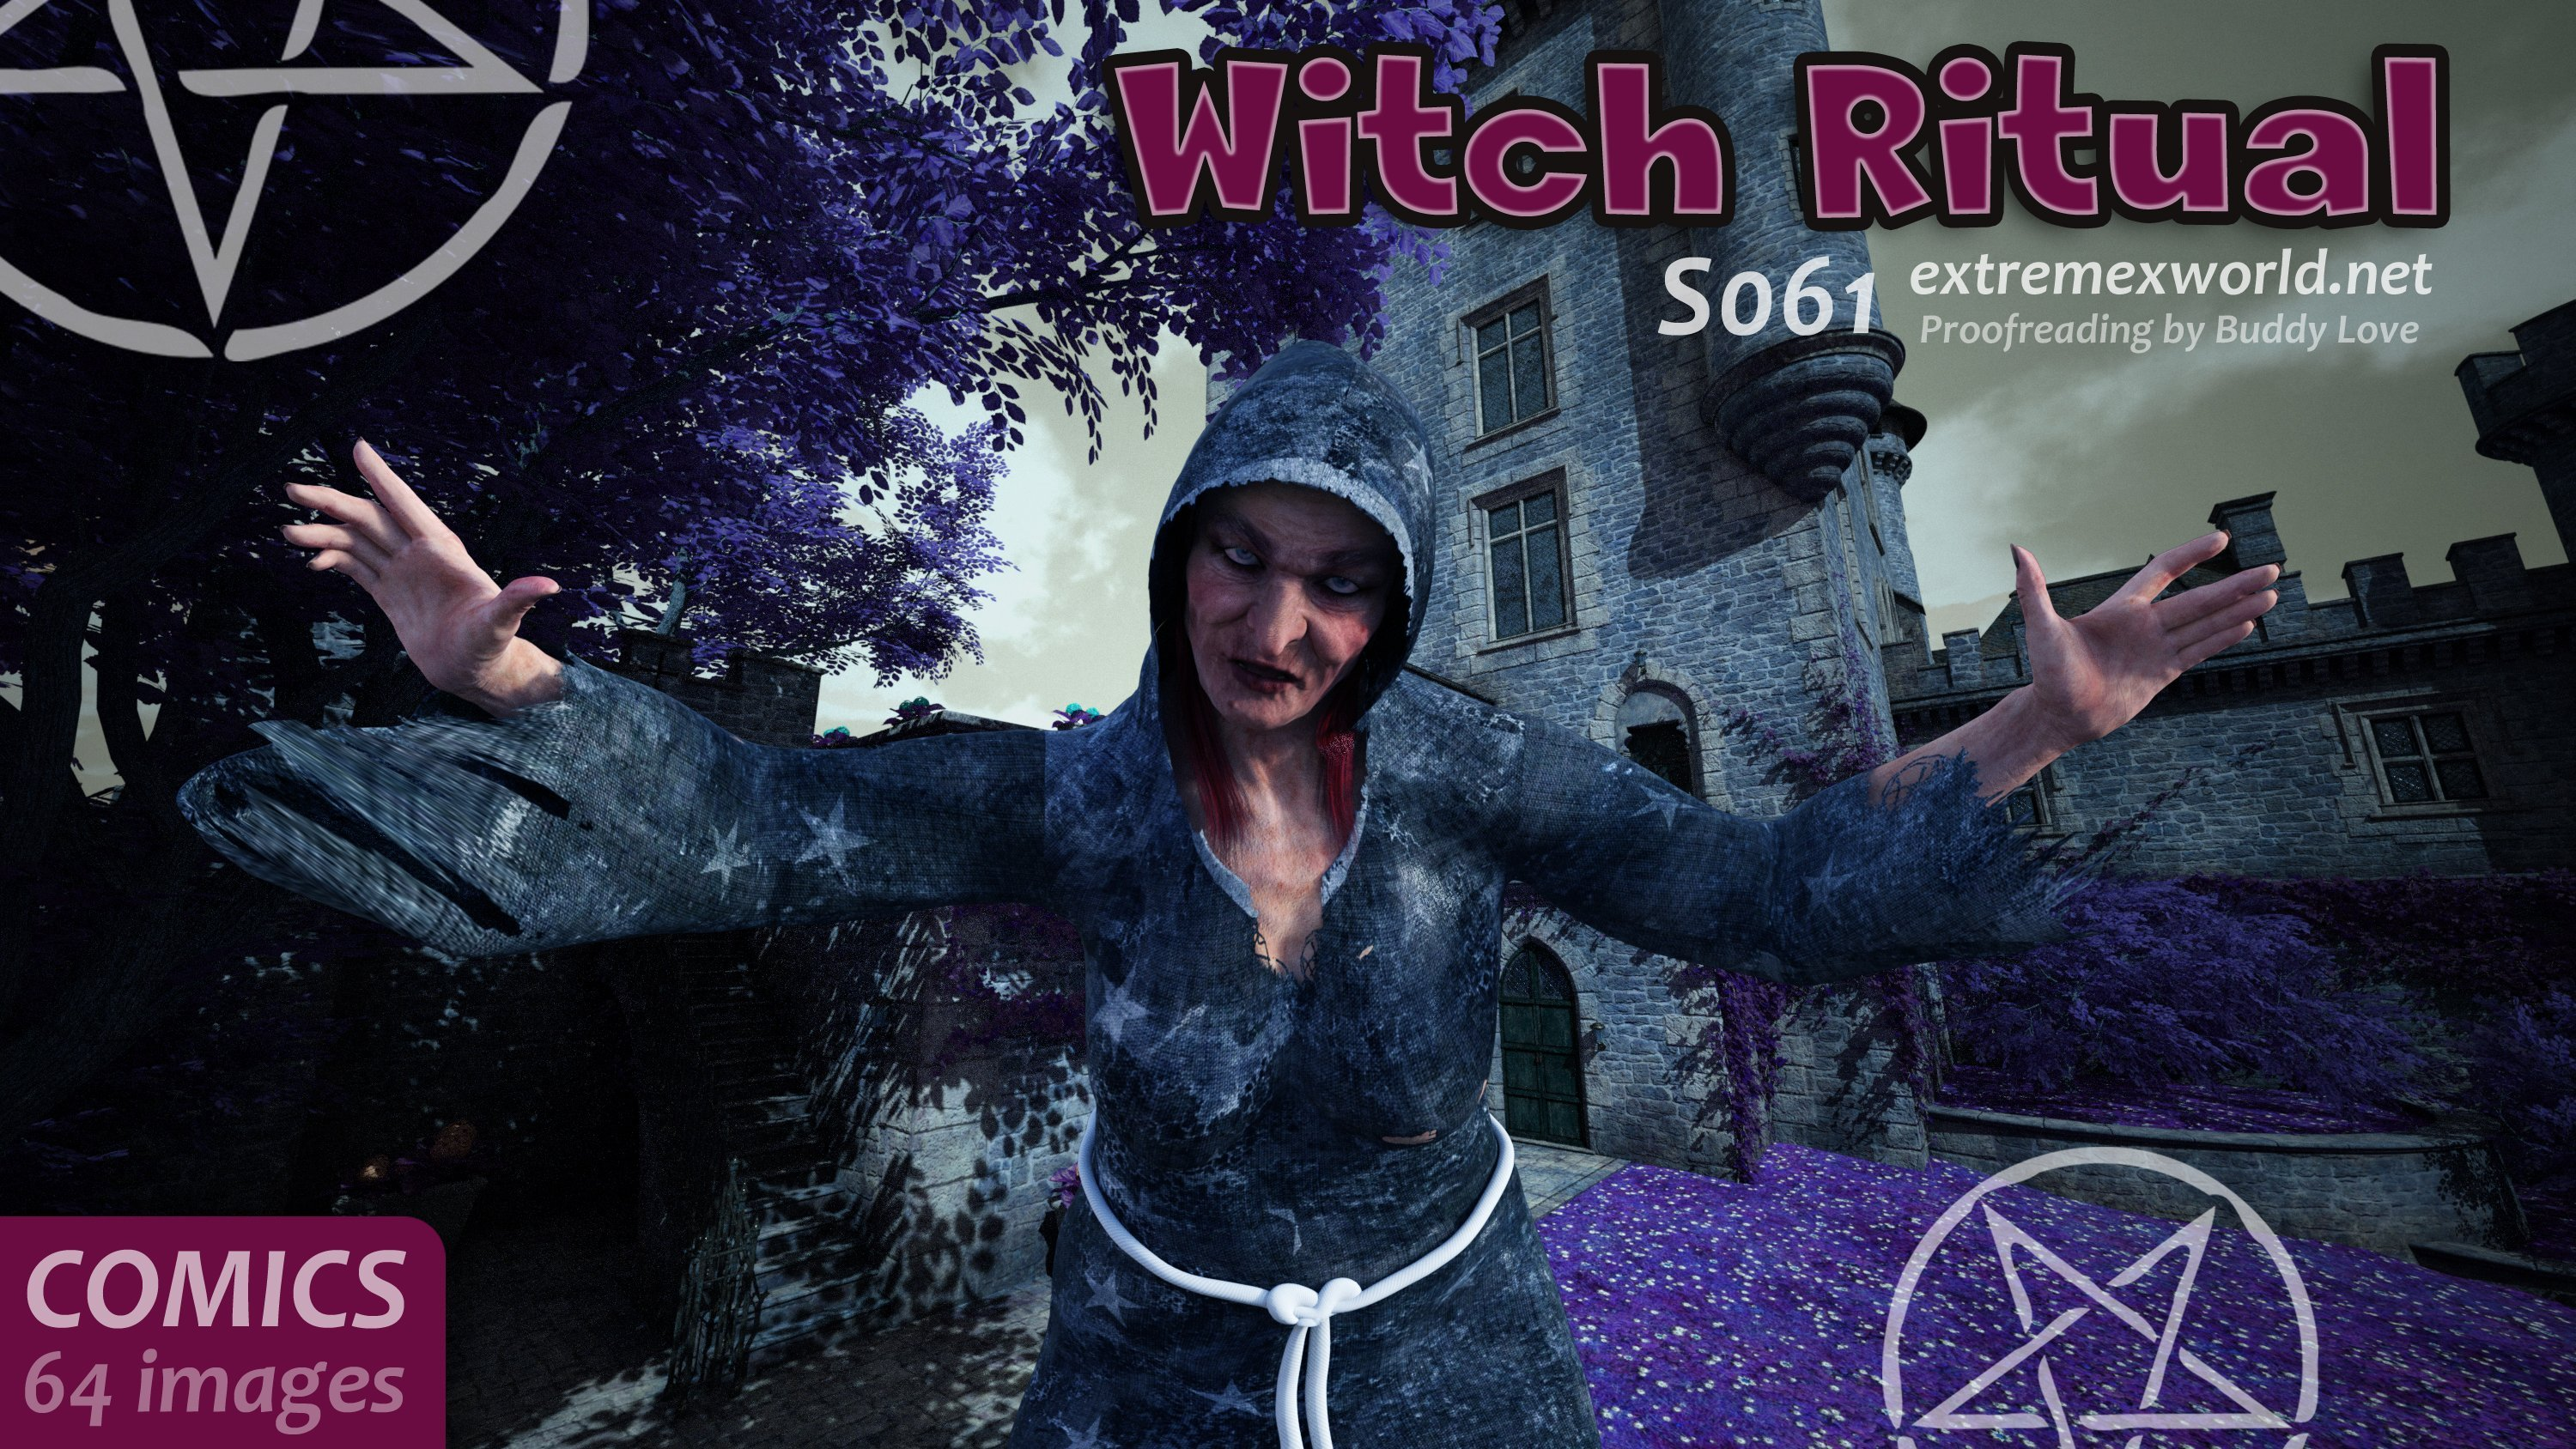 The.Witch.Ritual (1/65)